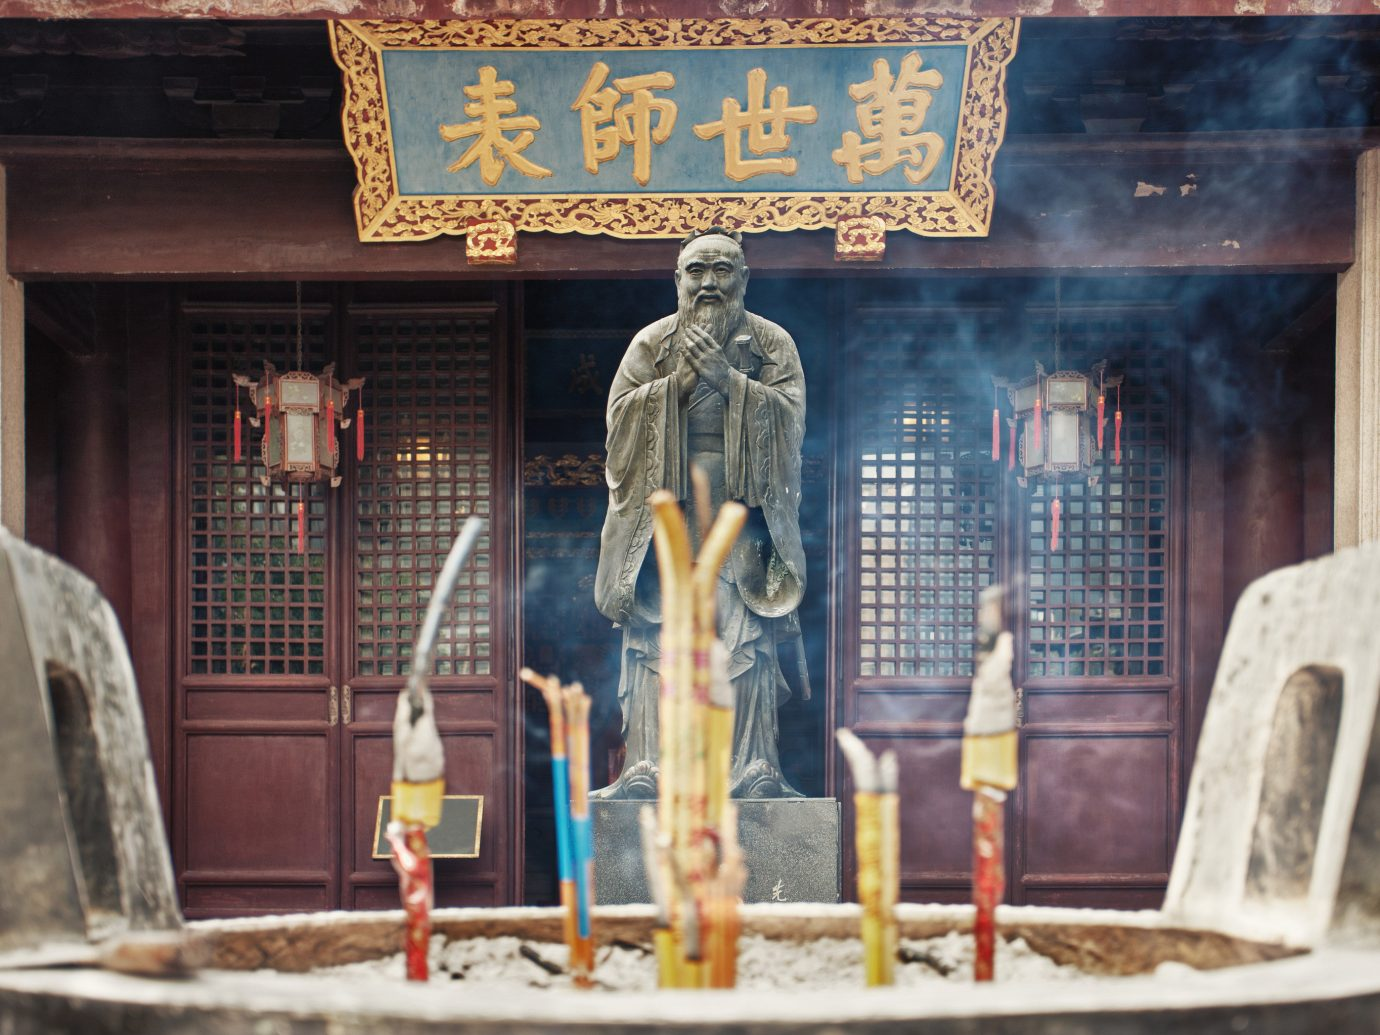 China china rose Shanghai Travel Tips Trip Ideas temple window display window